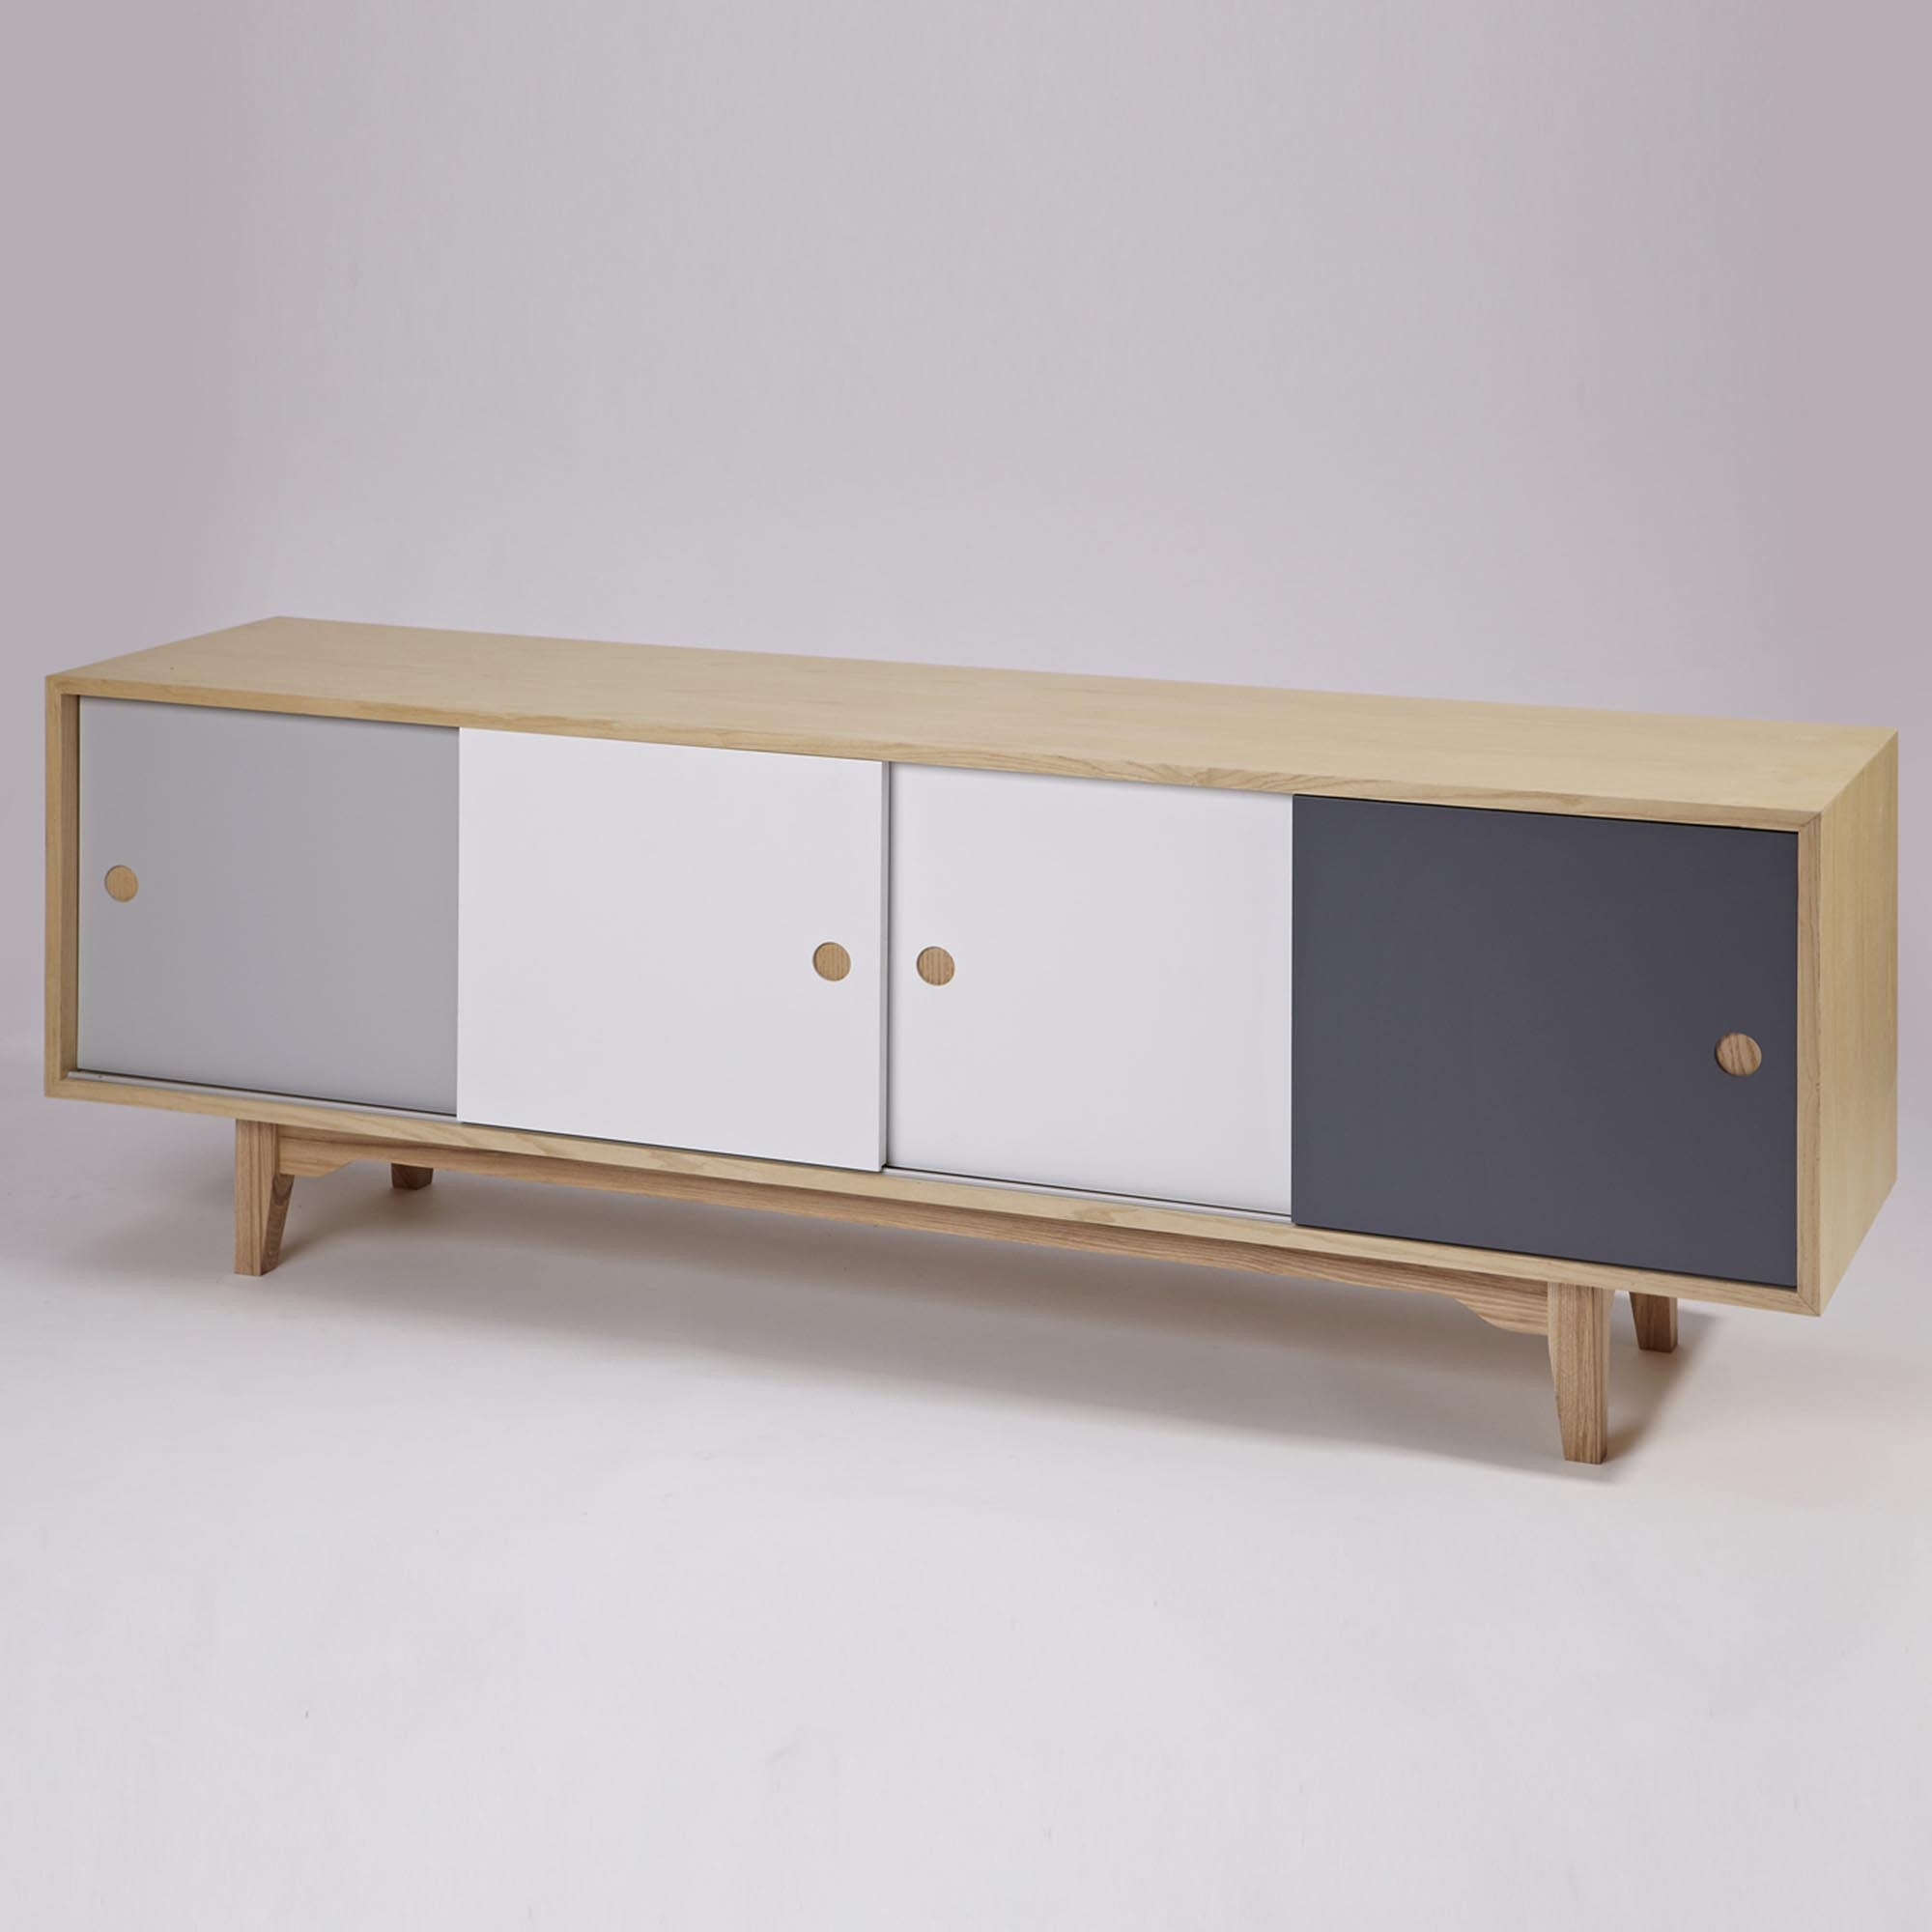 Coffee Table - Skive 180cm Sideboard  BP6027